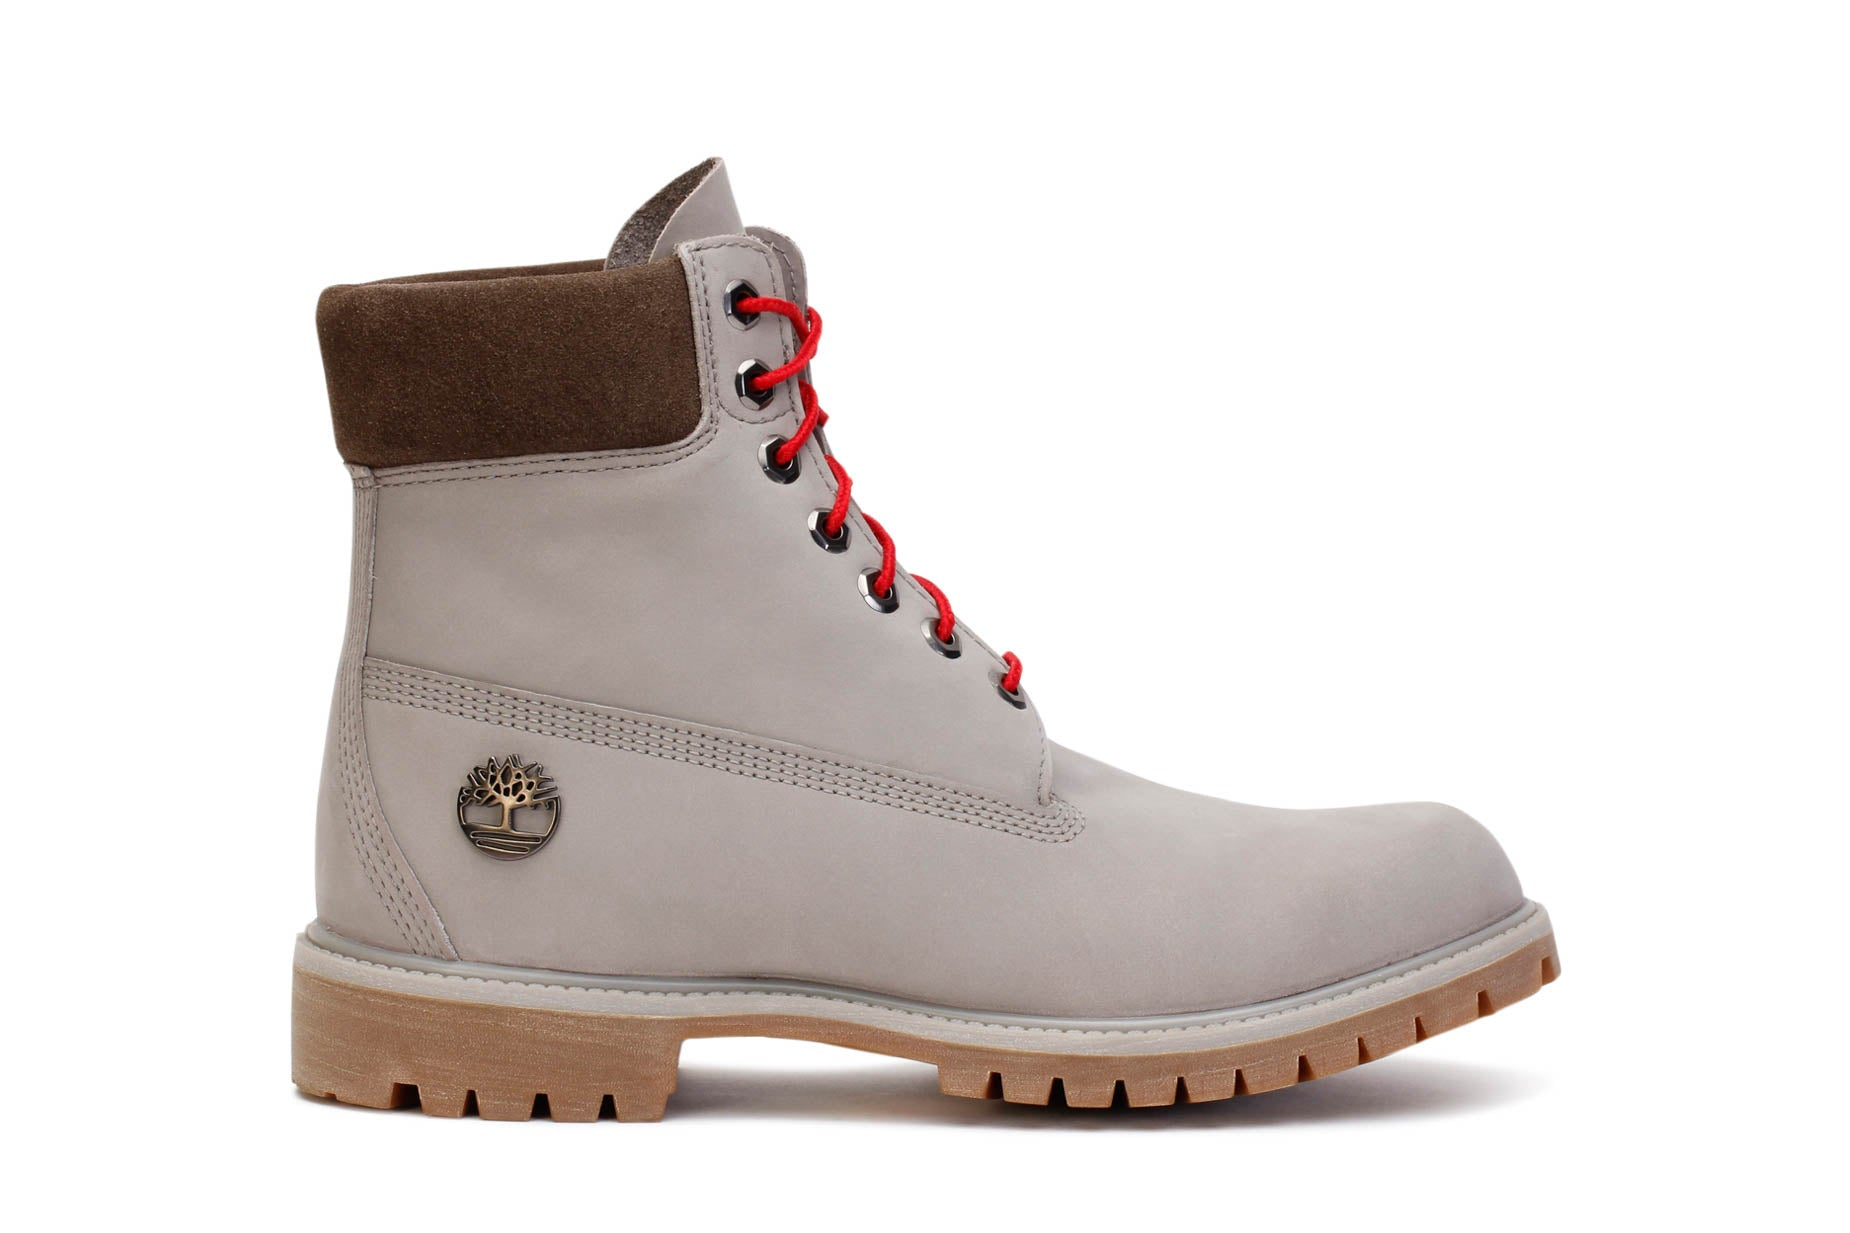 timberland-mens-6-inch-premium-waterproof-boots-medium-grey-nubuck-a1wjm-main